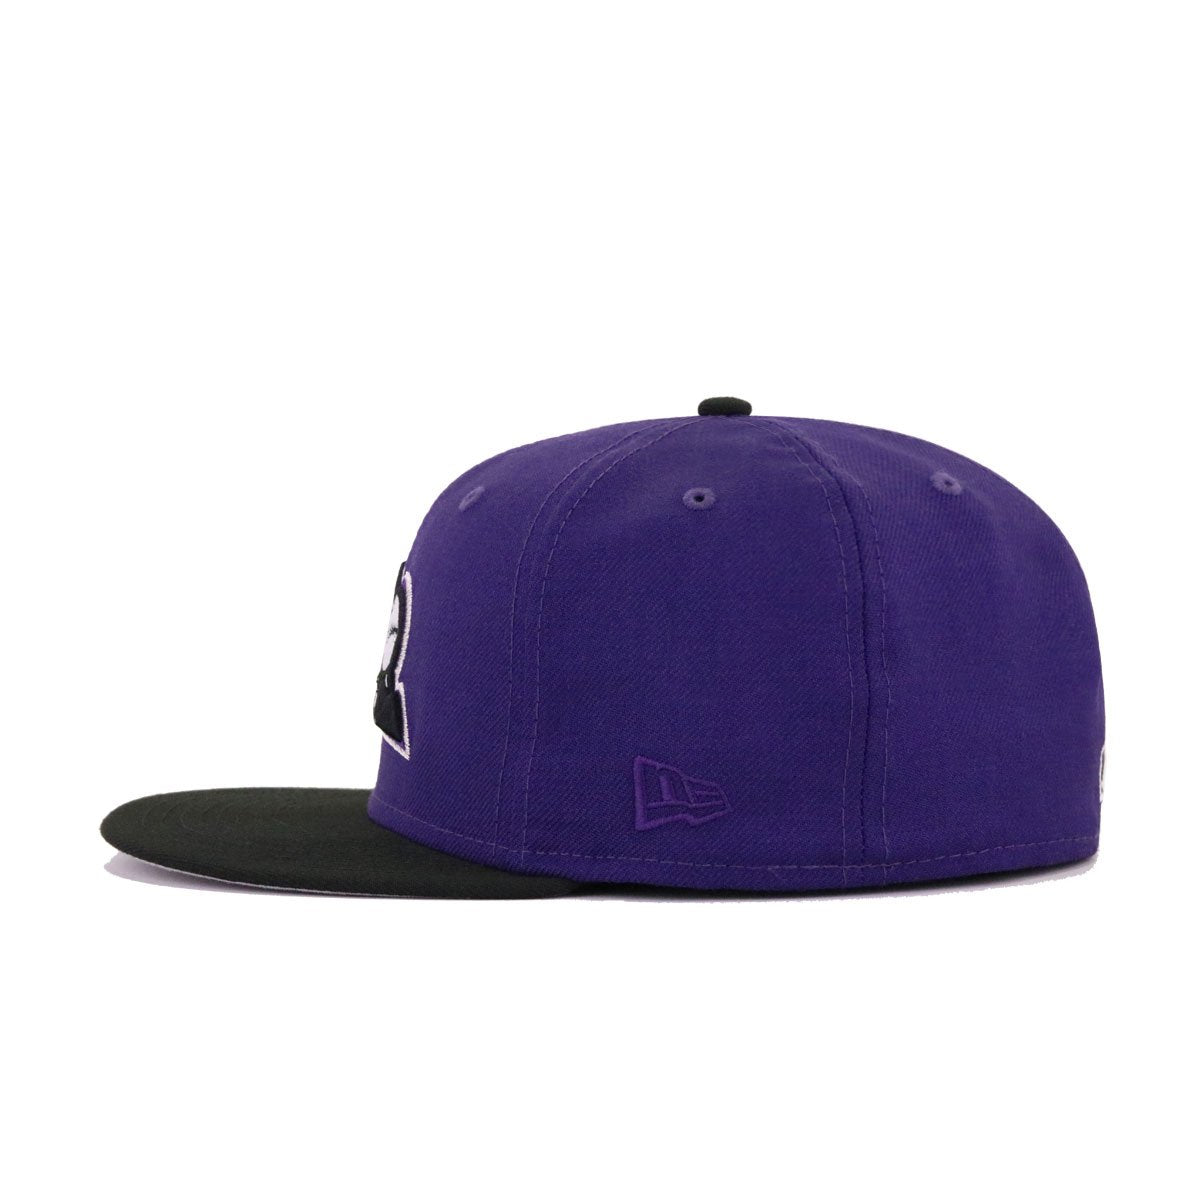 Colorado Rockies Purple Black Batting Practice New Era 59Fifty Fitted